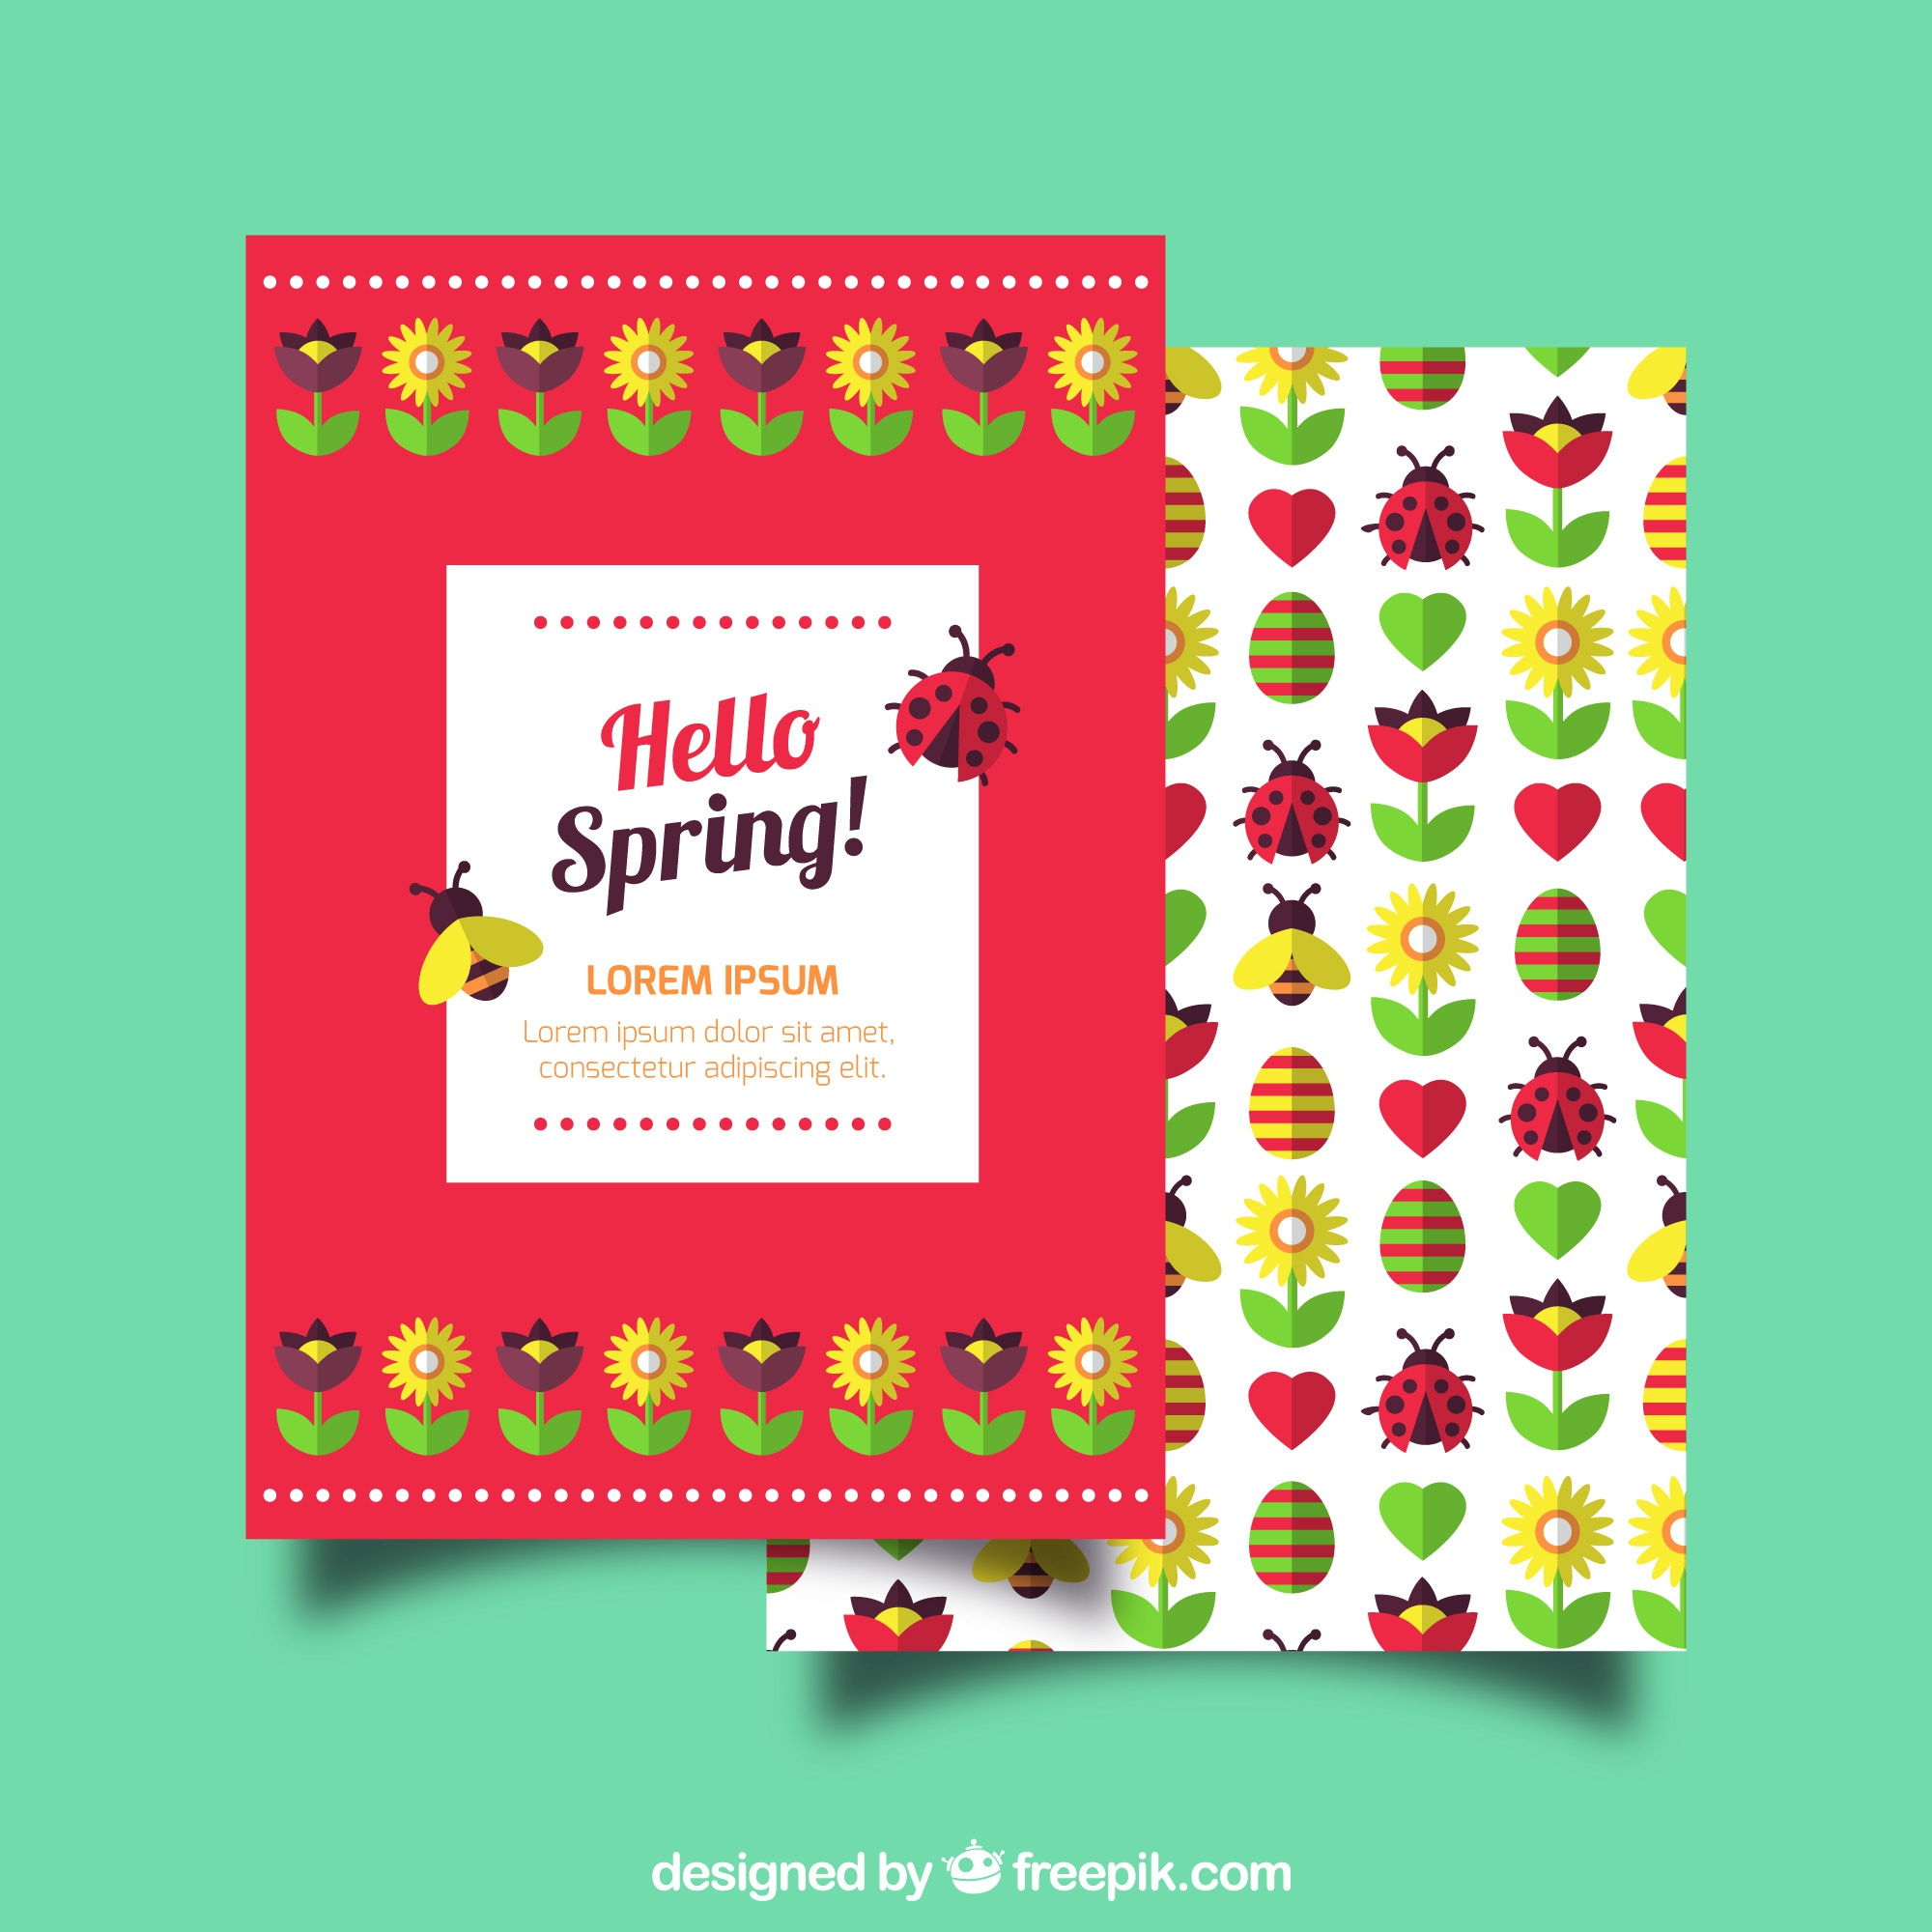 Spring greeting card with insects and flowers